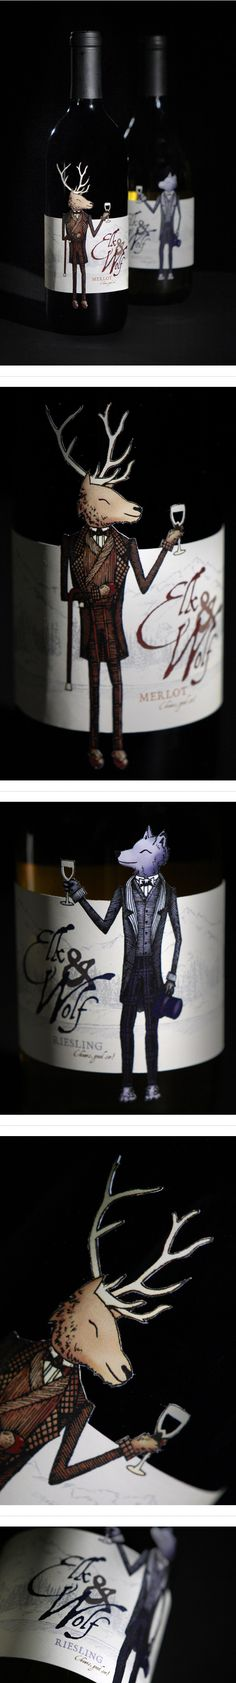 Elk Wolf Wine  by Lisa Lorek. How cute is this #wine #packaging PD